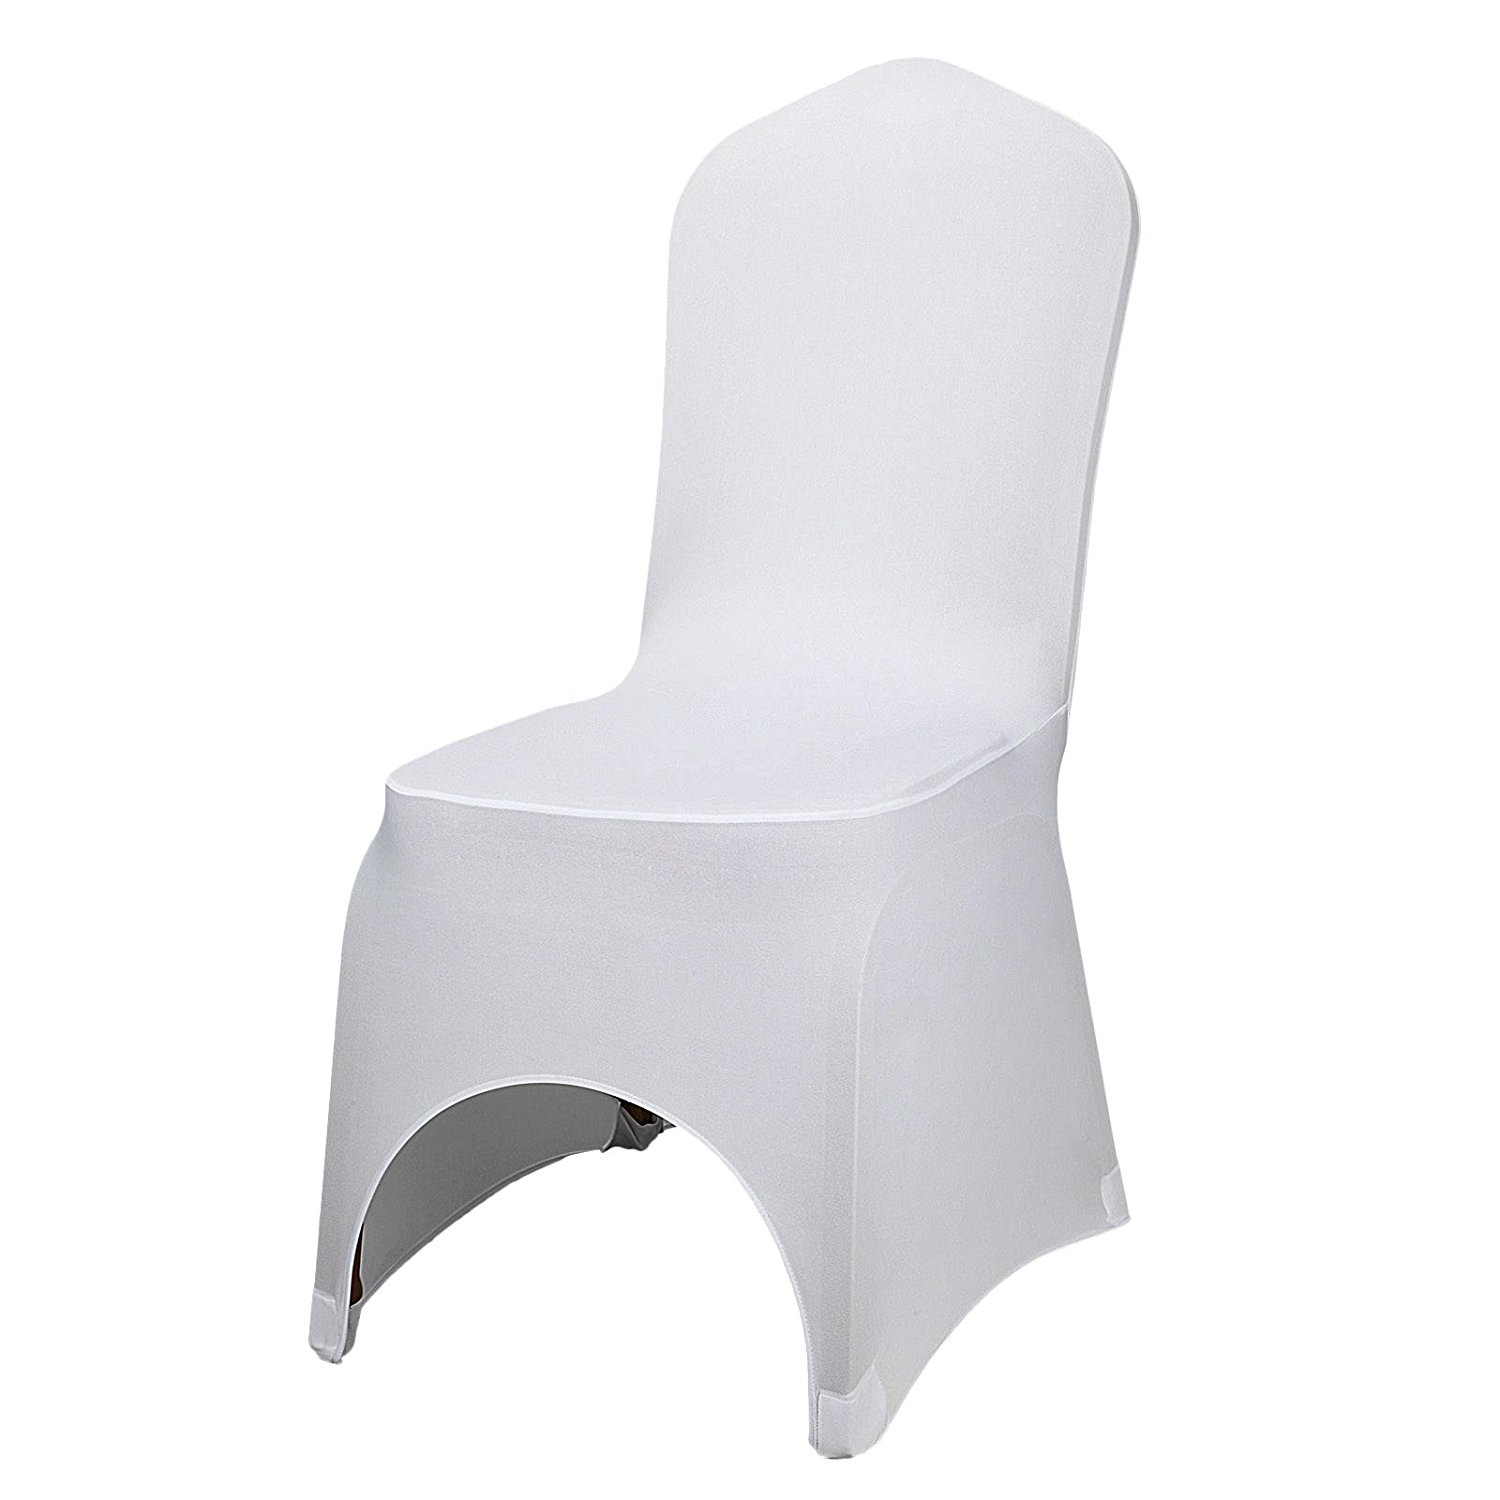 light pink spandex chair covers patio with shade cheap rent wedding find get quotations popsport 100pcs white stretch folding arched front for